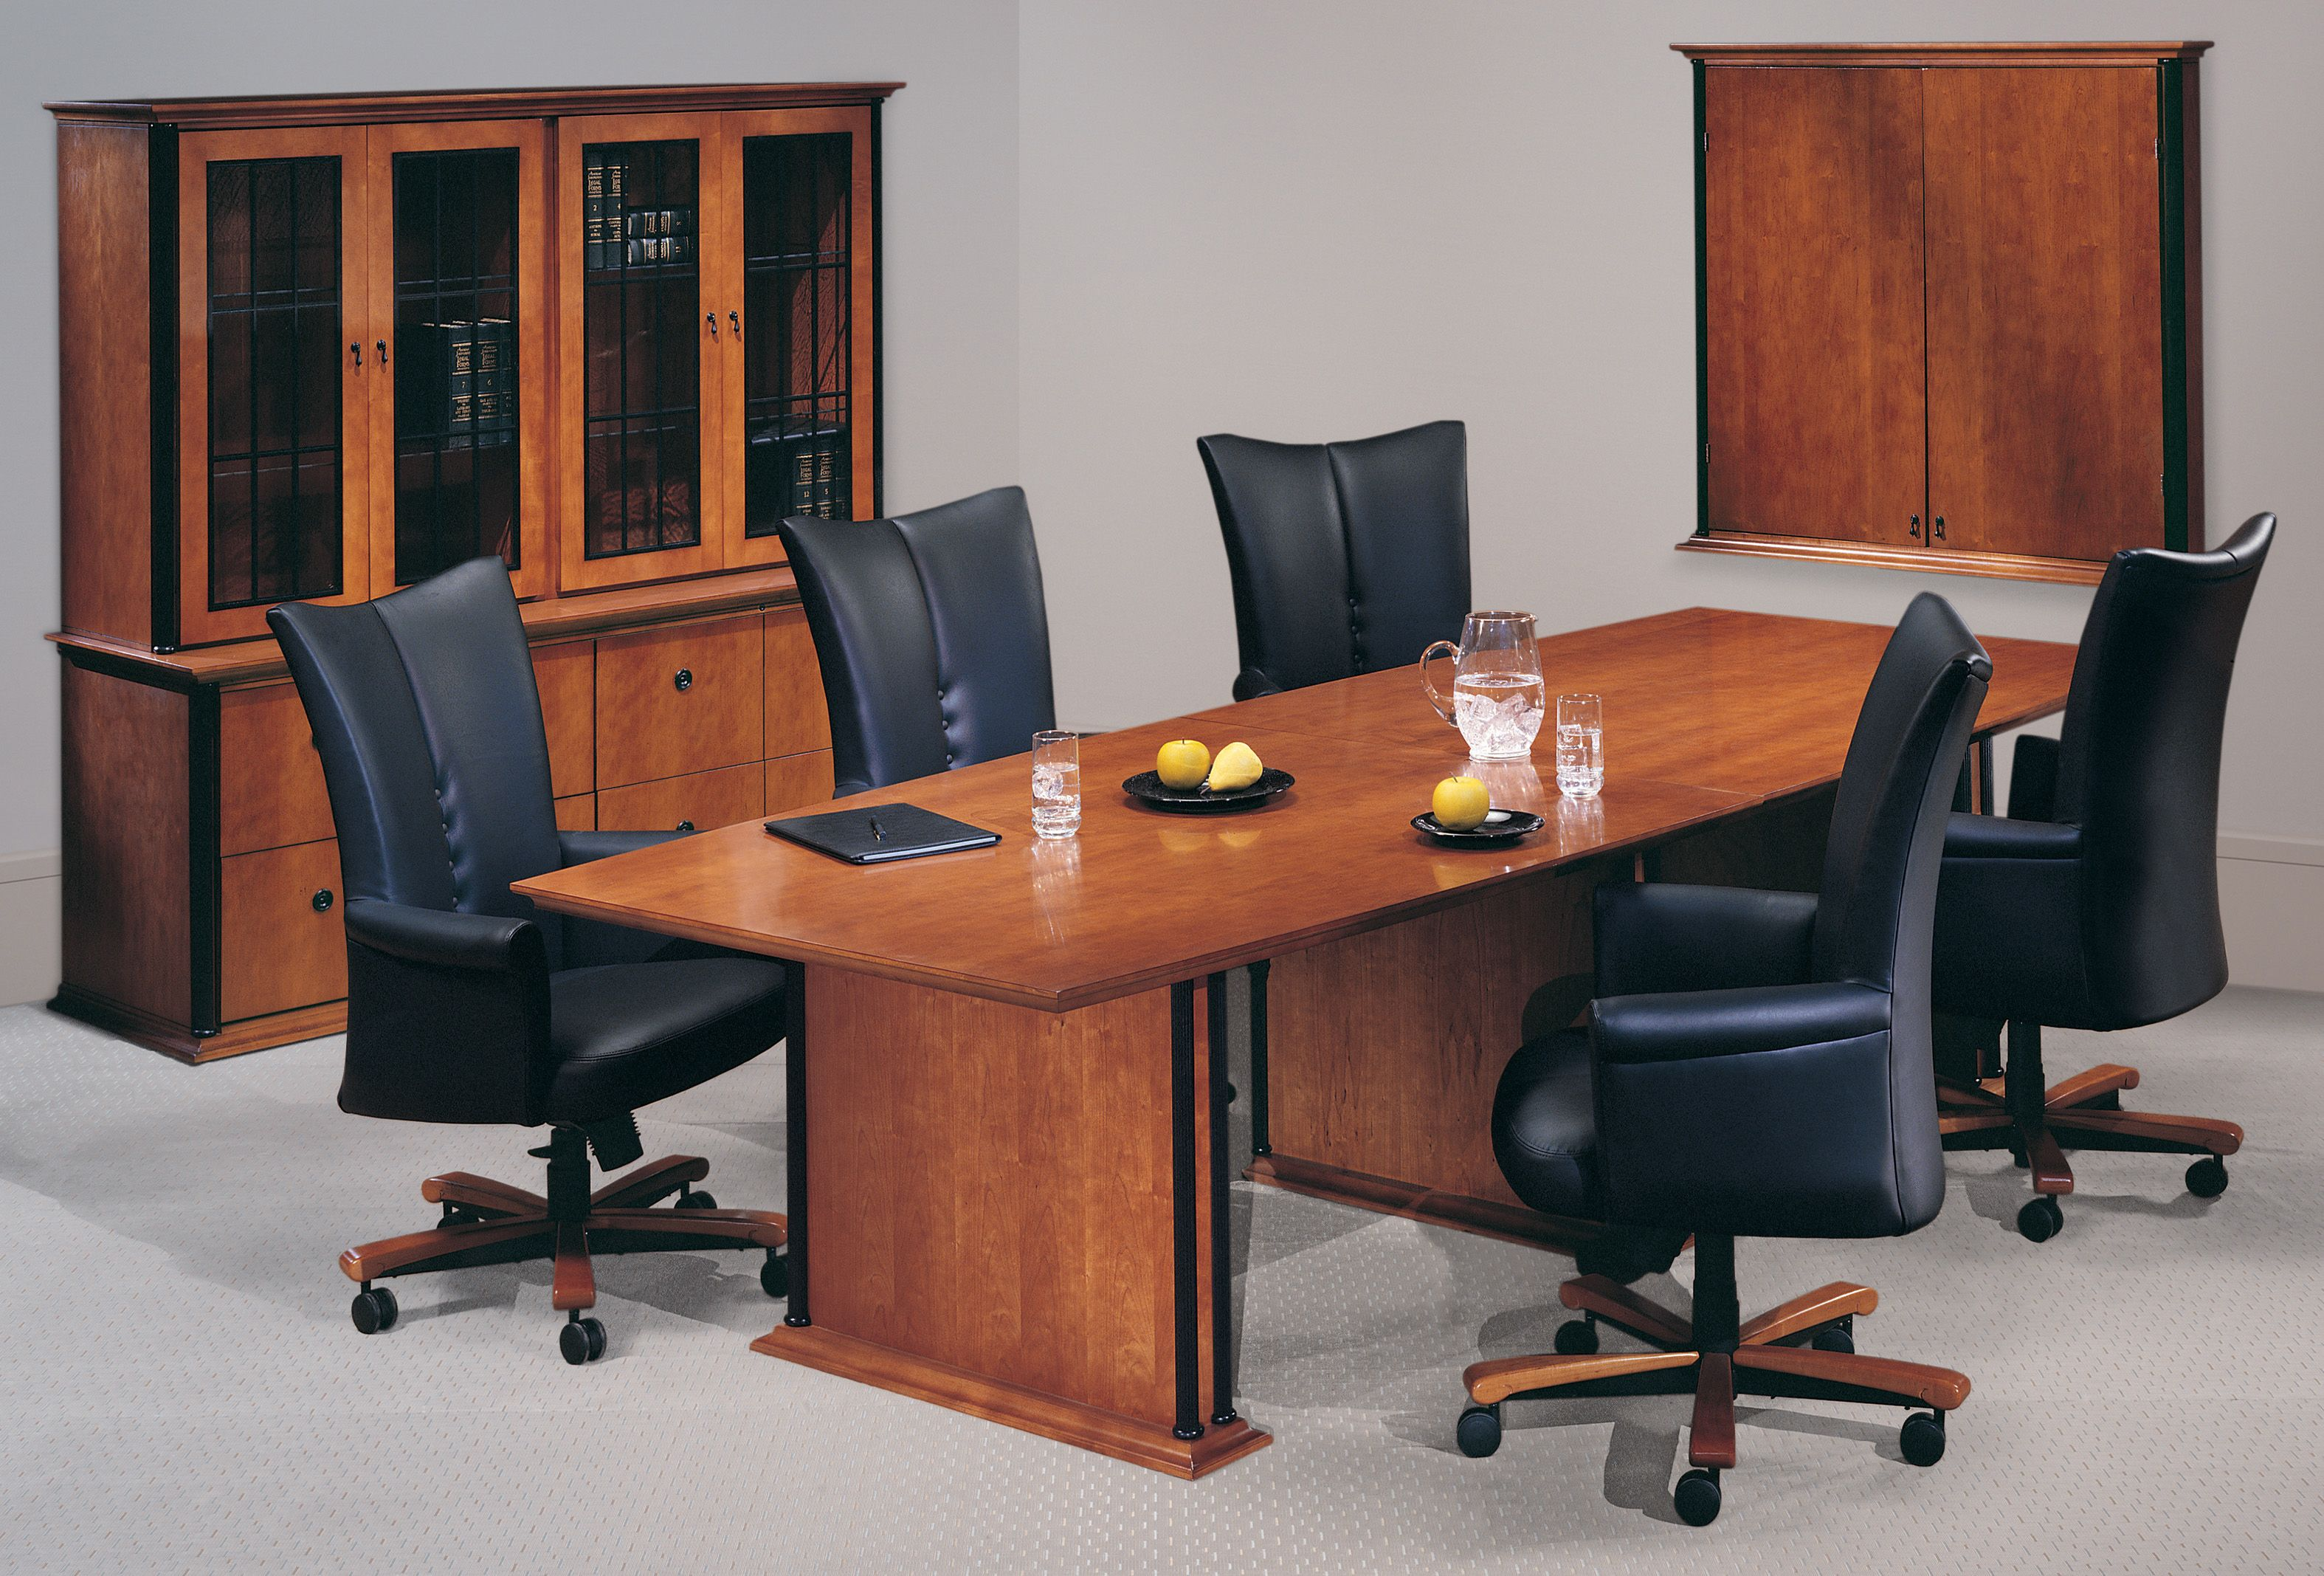 Cheap office chairs used - Cheap Office Desks Used Living Spaces Living Room Sets Check More At Http